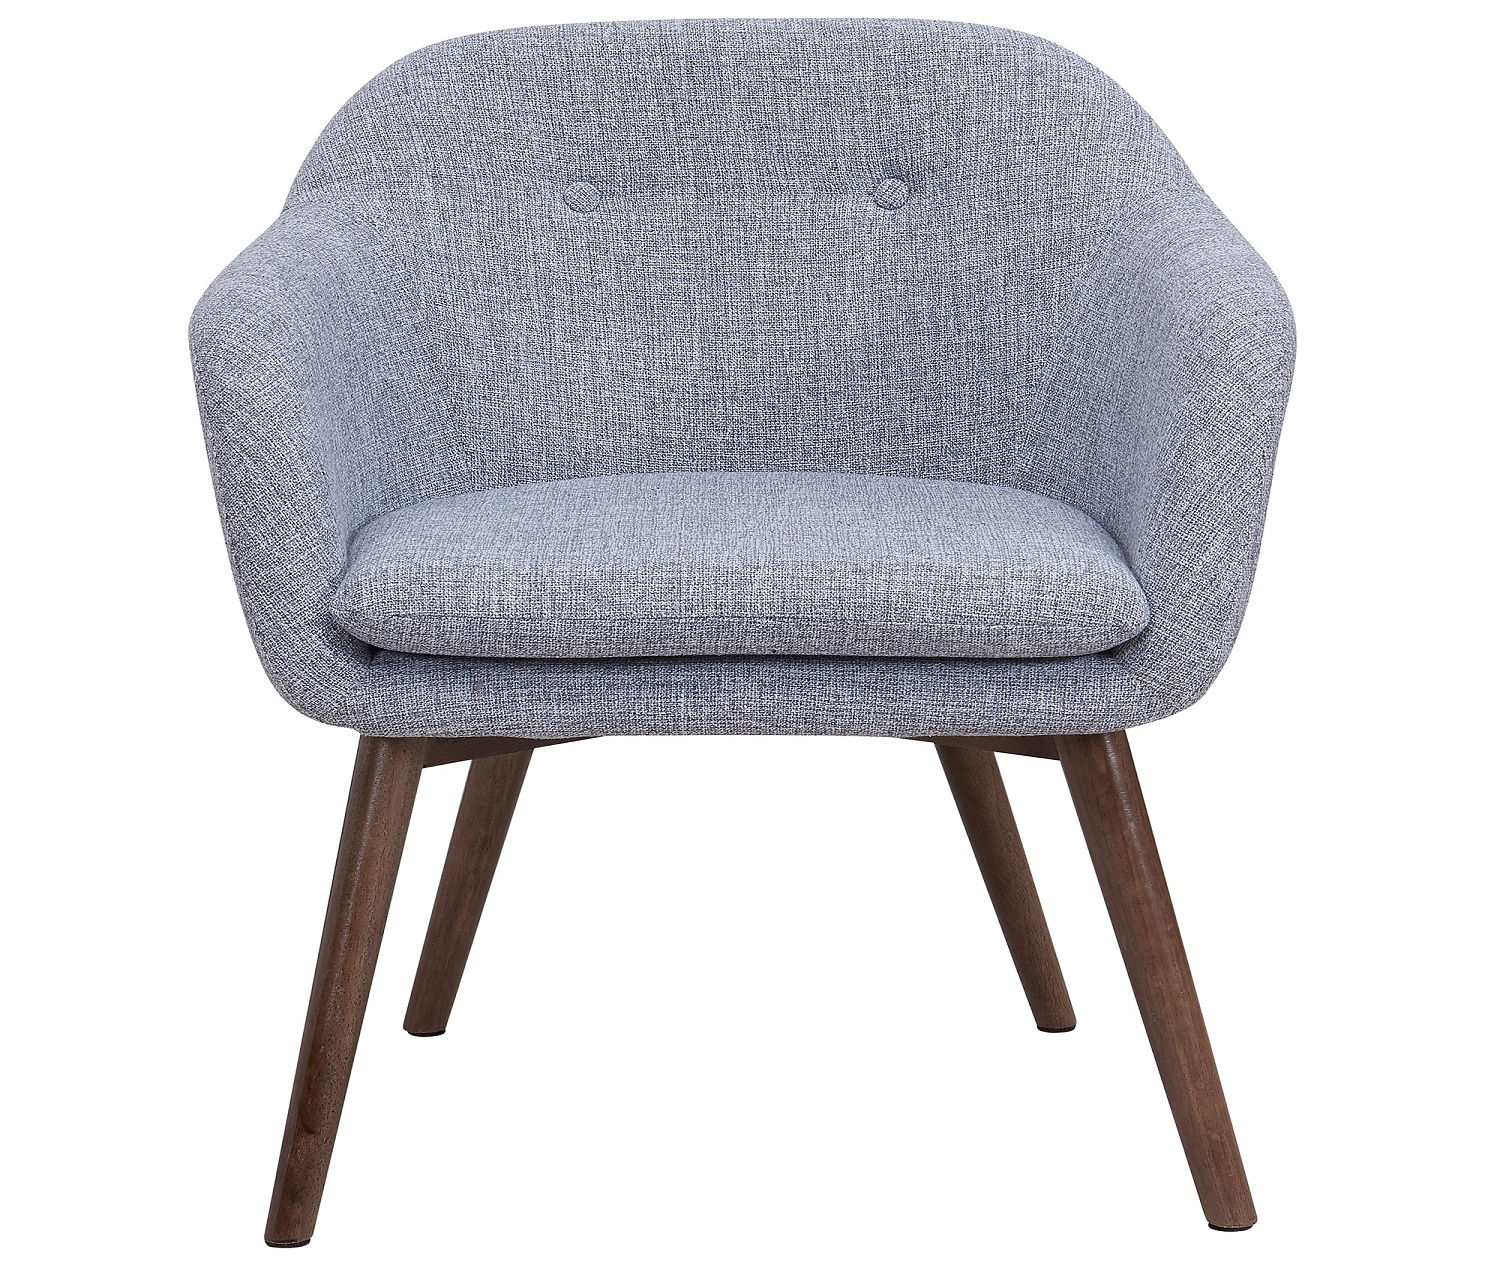 MINTO-ACCENT CHAIR-GREY BLEND, 841173029074, Accent Chairs by Midha Furniture to Brampton, Mississauga, Etobicoke, Toronto, Scraborough, Caledon, Oakville, Markham, Ajax, Pickering, Oshawa, Richmondhill, Kitchener, Hamilton and GTA area